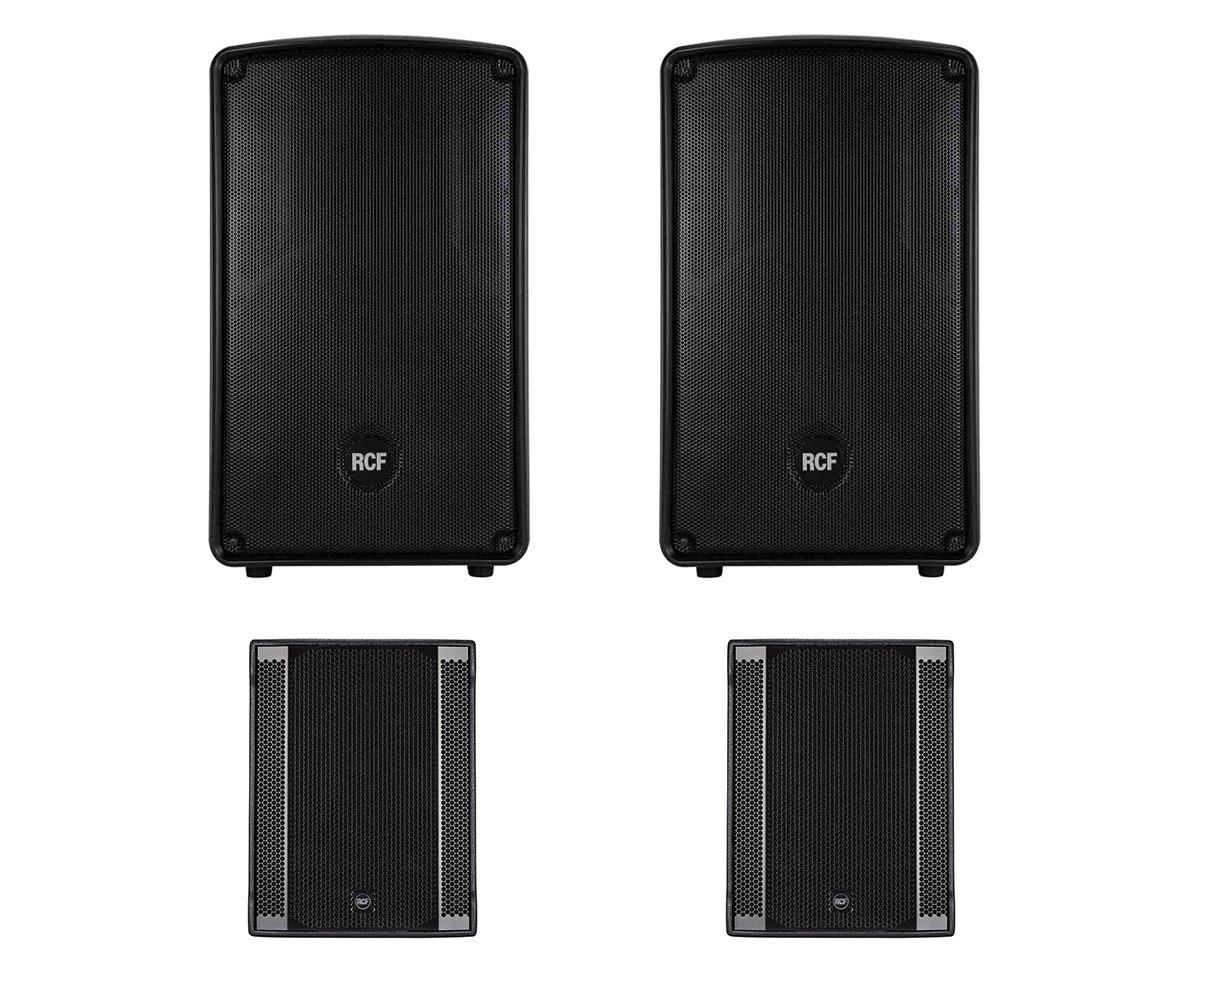 2x RCF HD 12-A MK4 + 2x RCF Sub 708-AS II Active Speaker / Subwoofer 2.2 System